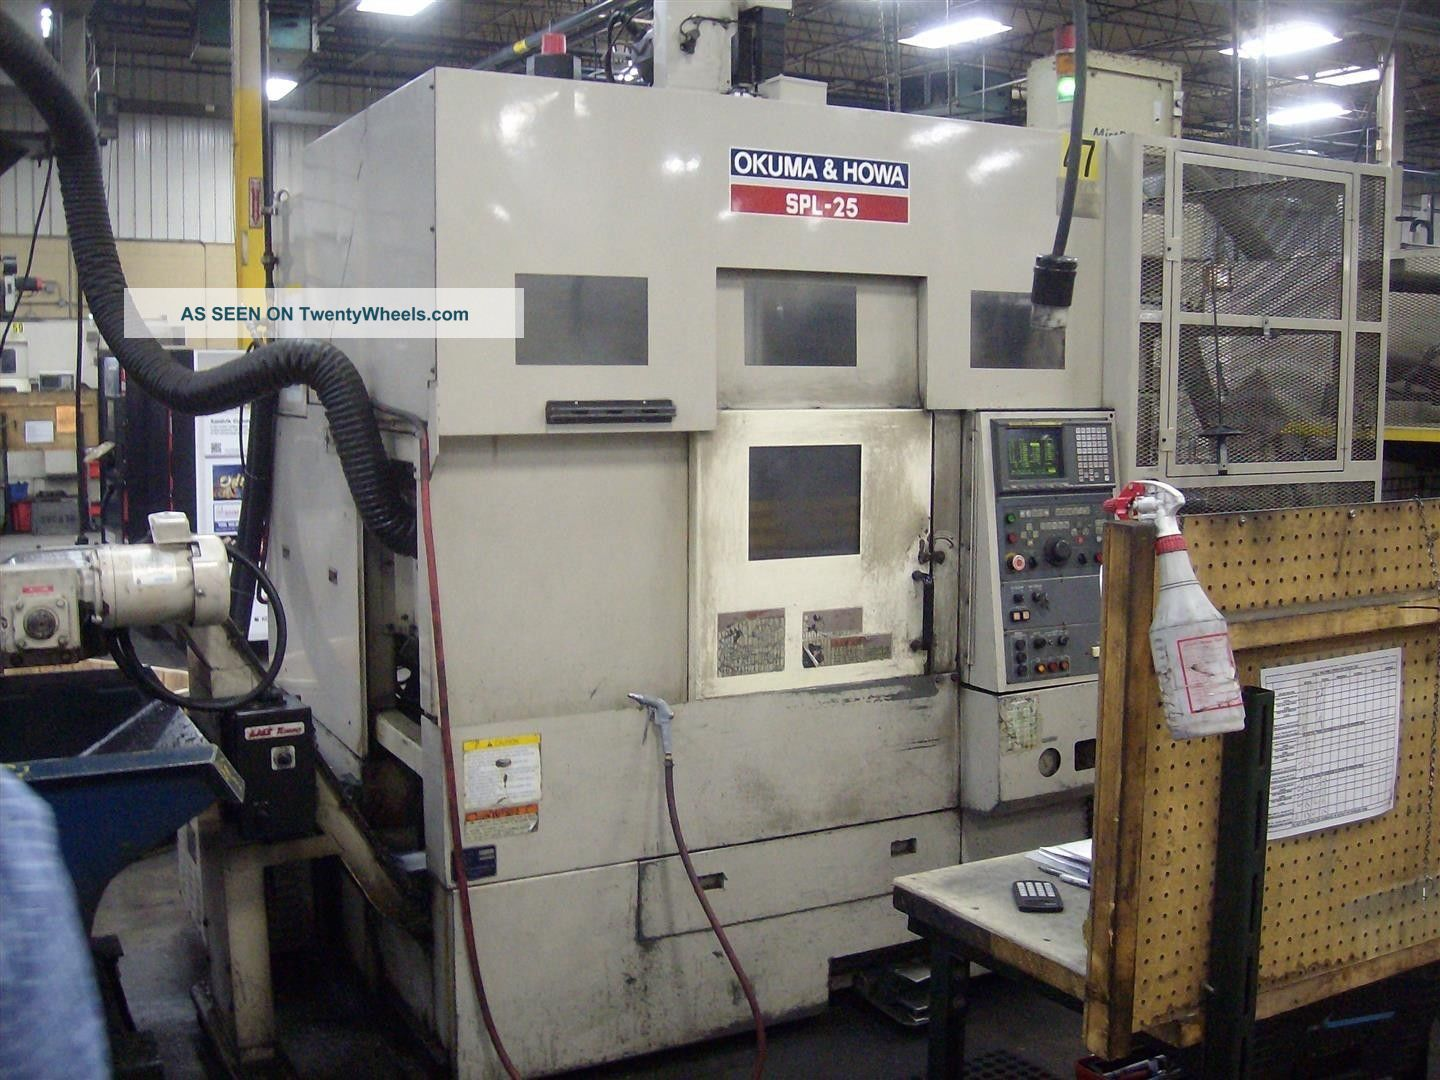 Okuma And Howa Spl - 25 Cnc Twin Turret Lathe Auto Gantry Loader Turning Center 00 Metalworking Lathes photo